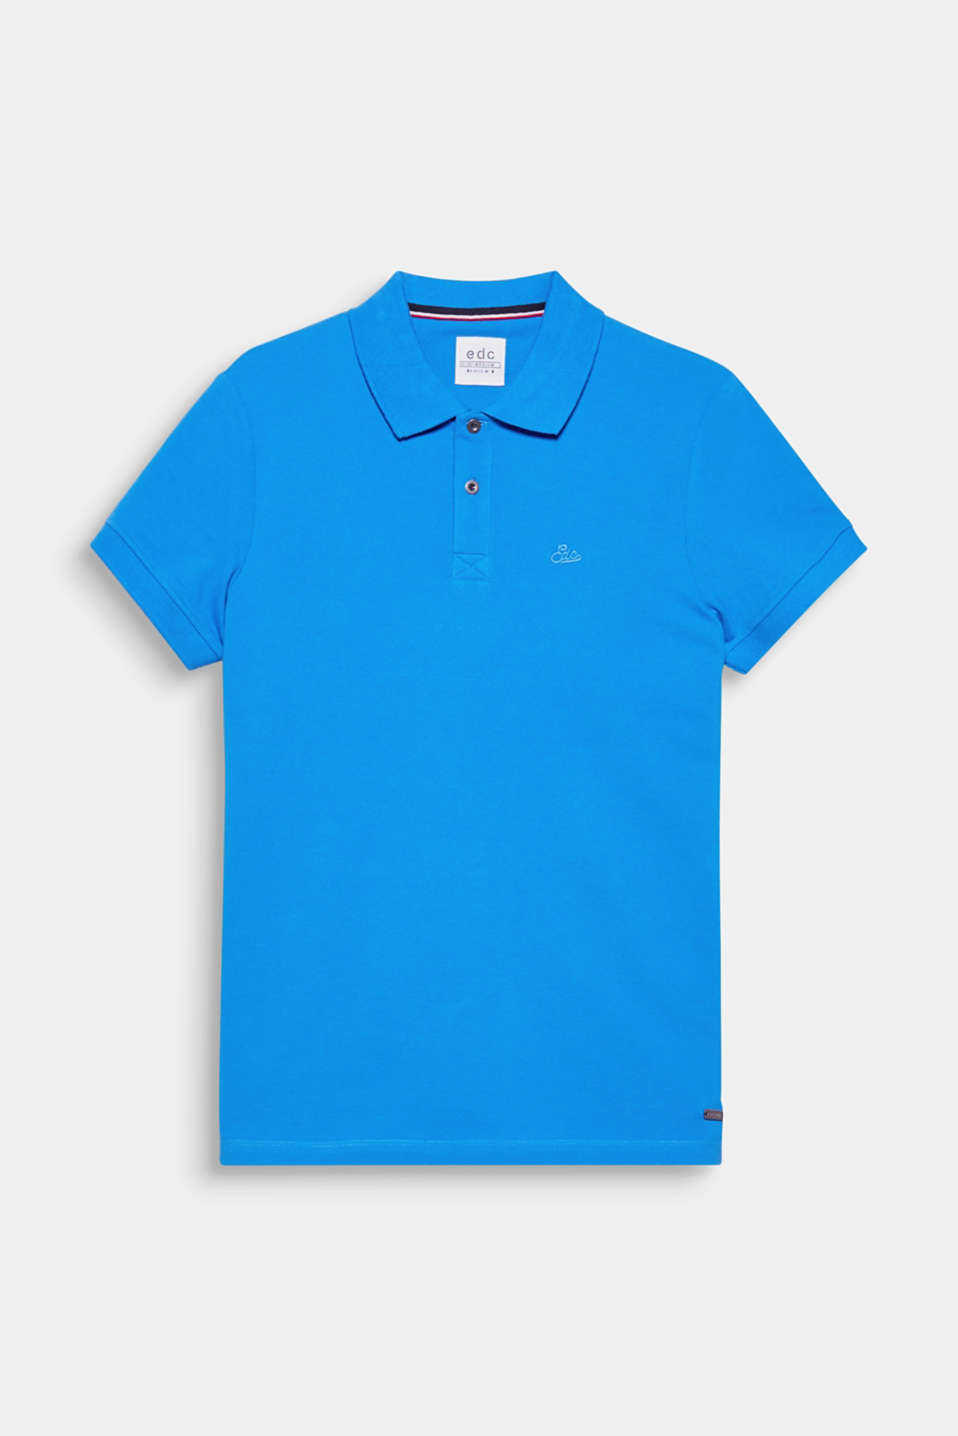 A fashion classic: the polo shirt! The tonal logo stitching on the left-hand side of the chest accentuates the look.